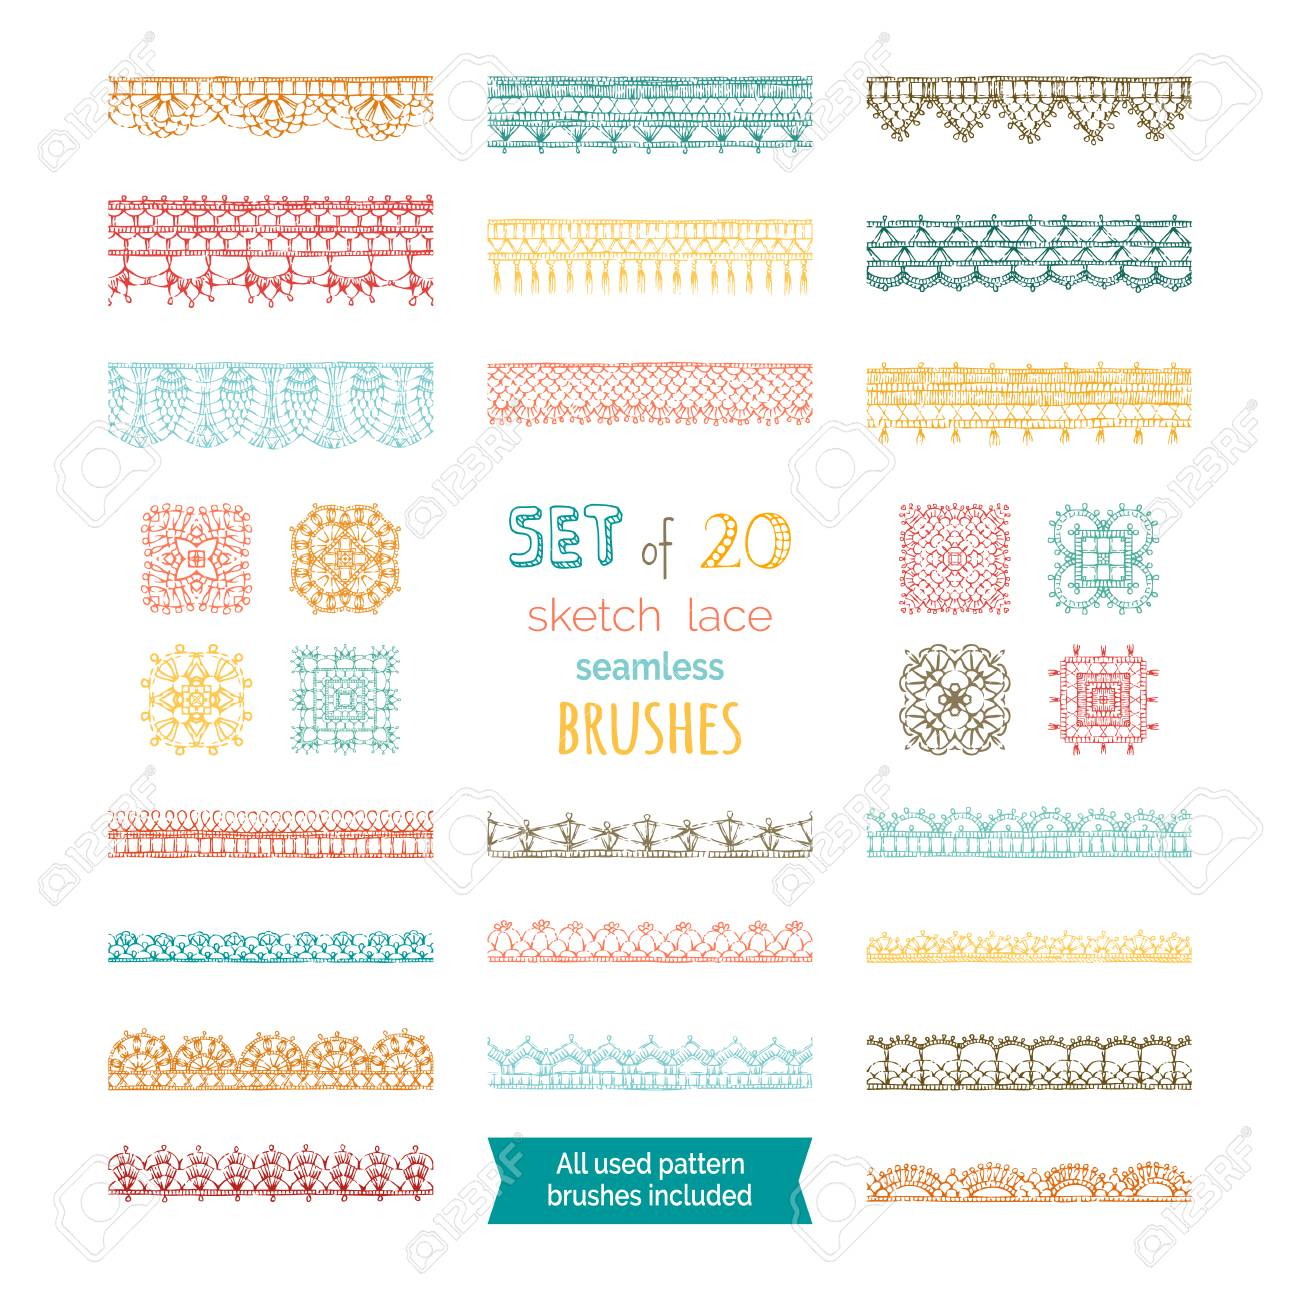 Knitted Crochet Edging Patterns And Borders Isolated On White ...